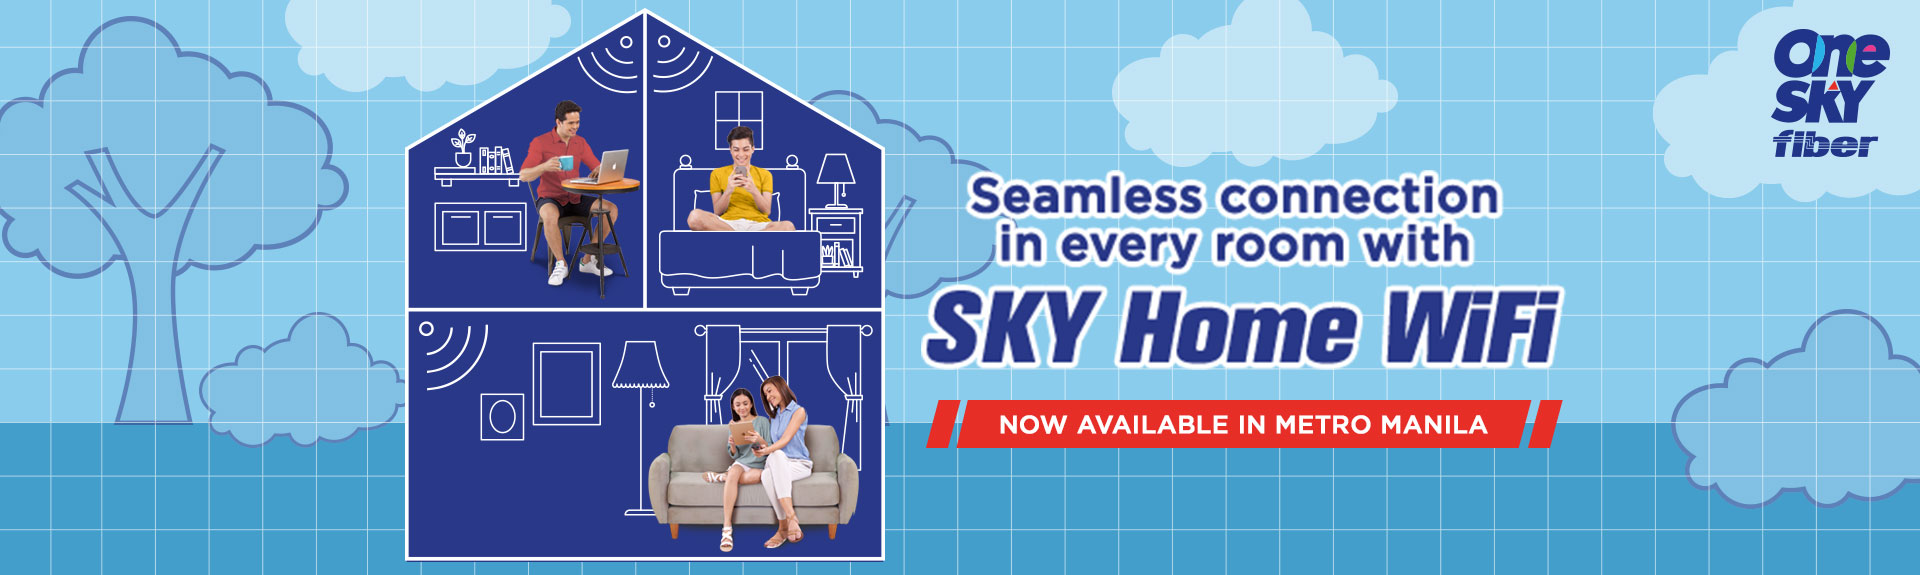 Introducting SKY Home